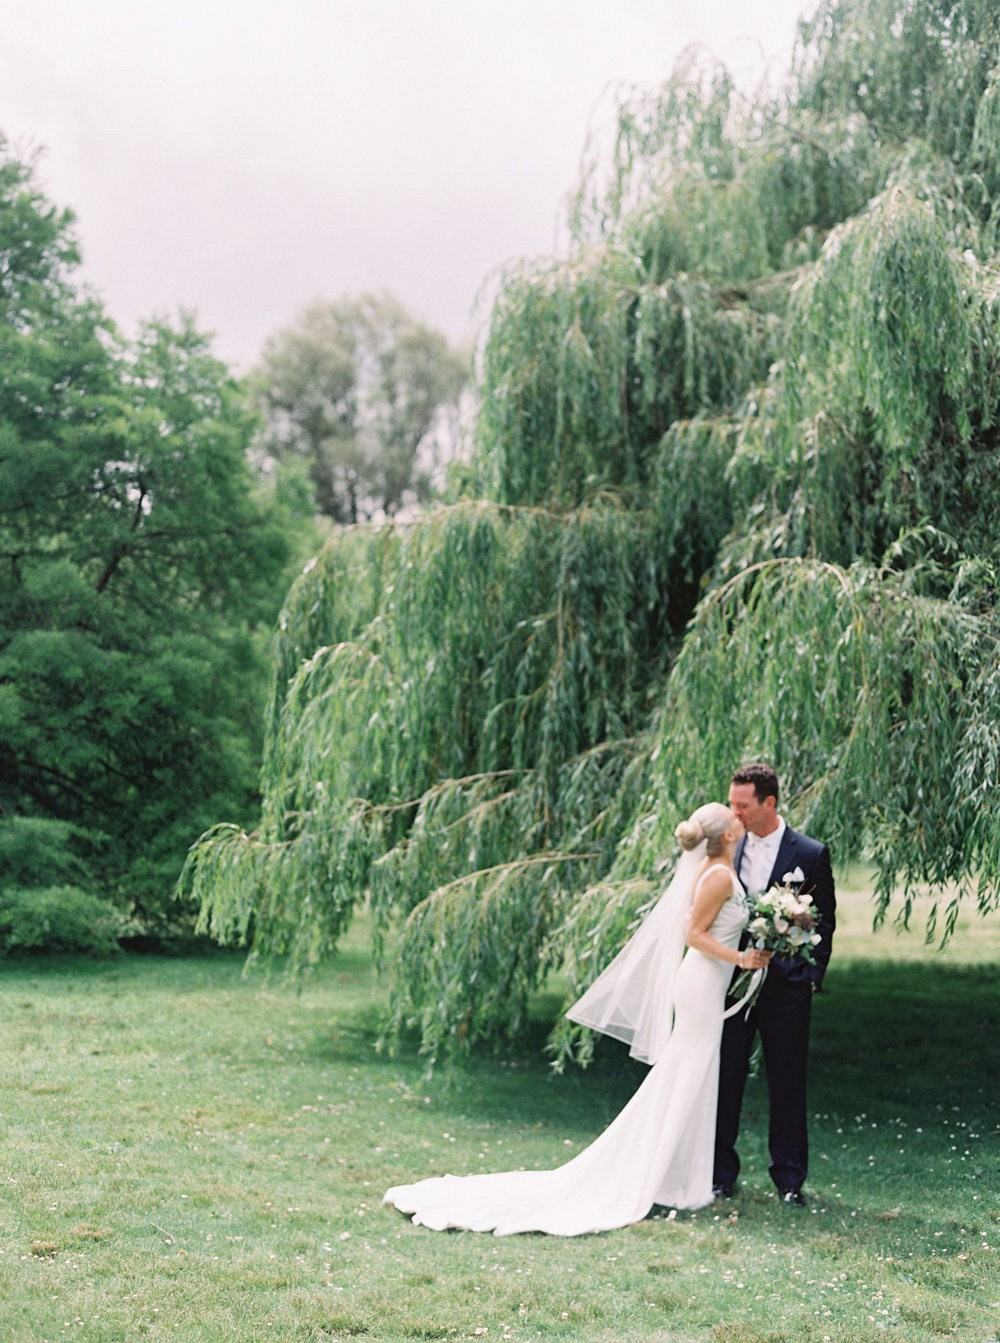 Jordan and Norrie's Elegant Botanical Garden Wedding